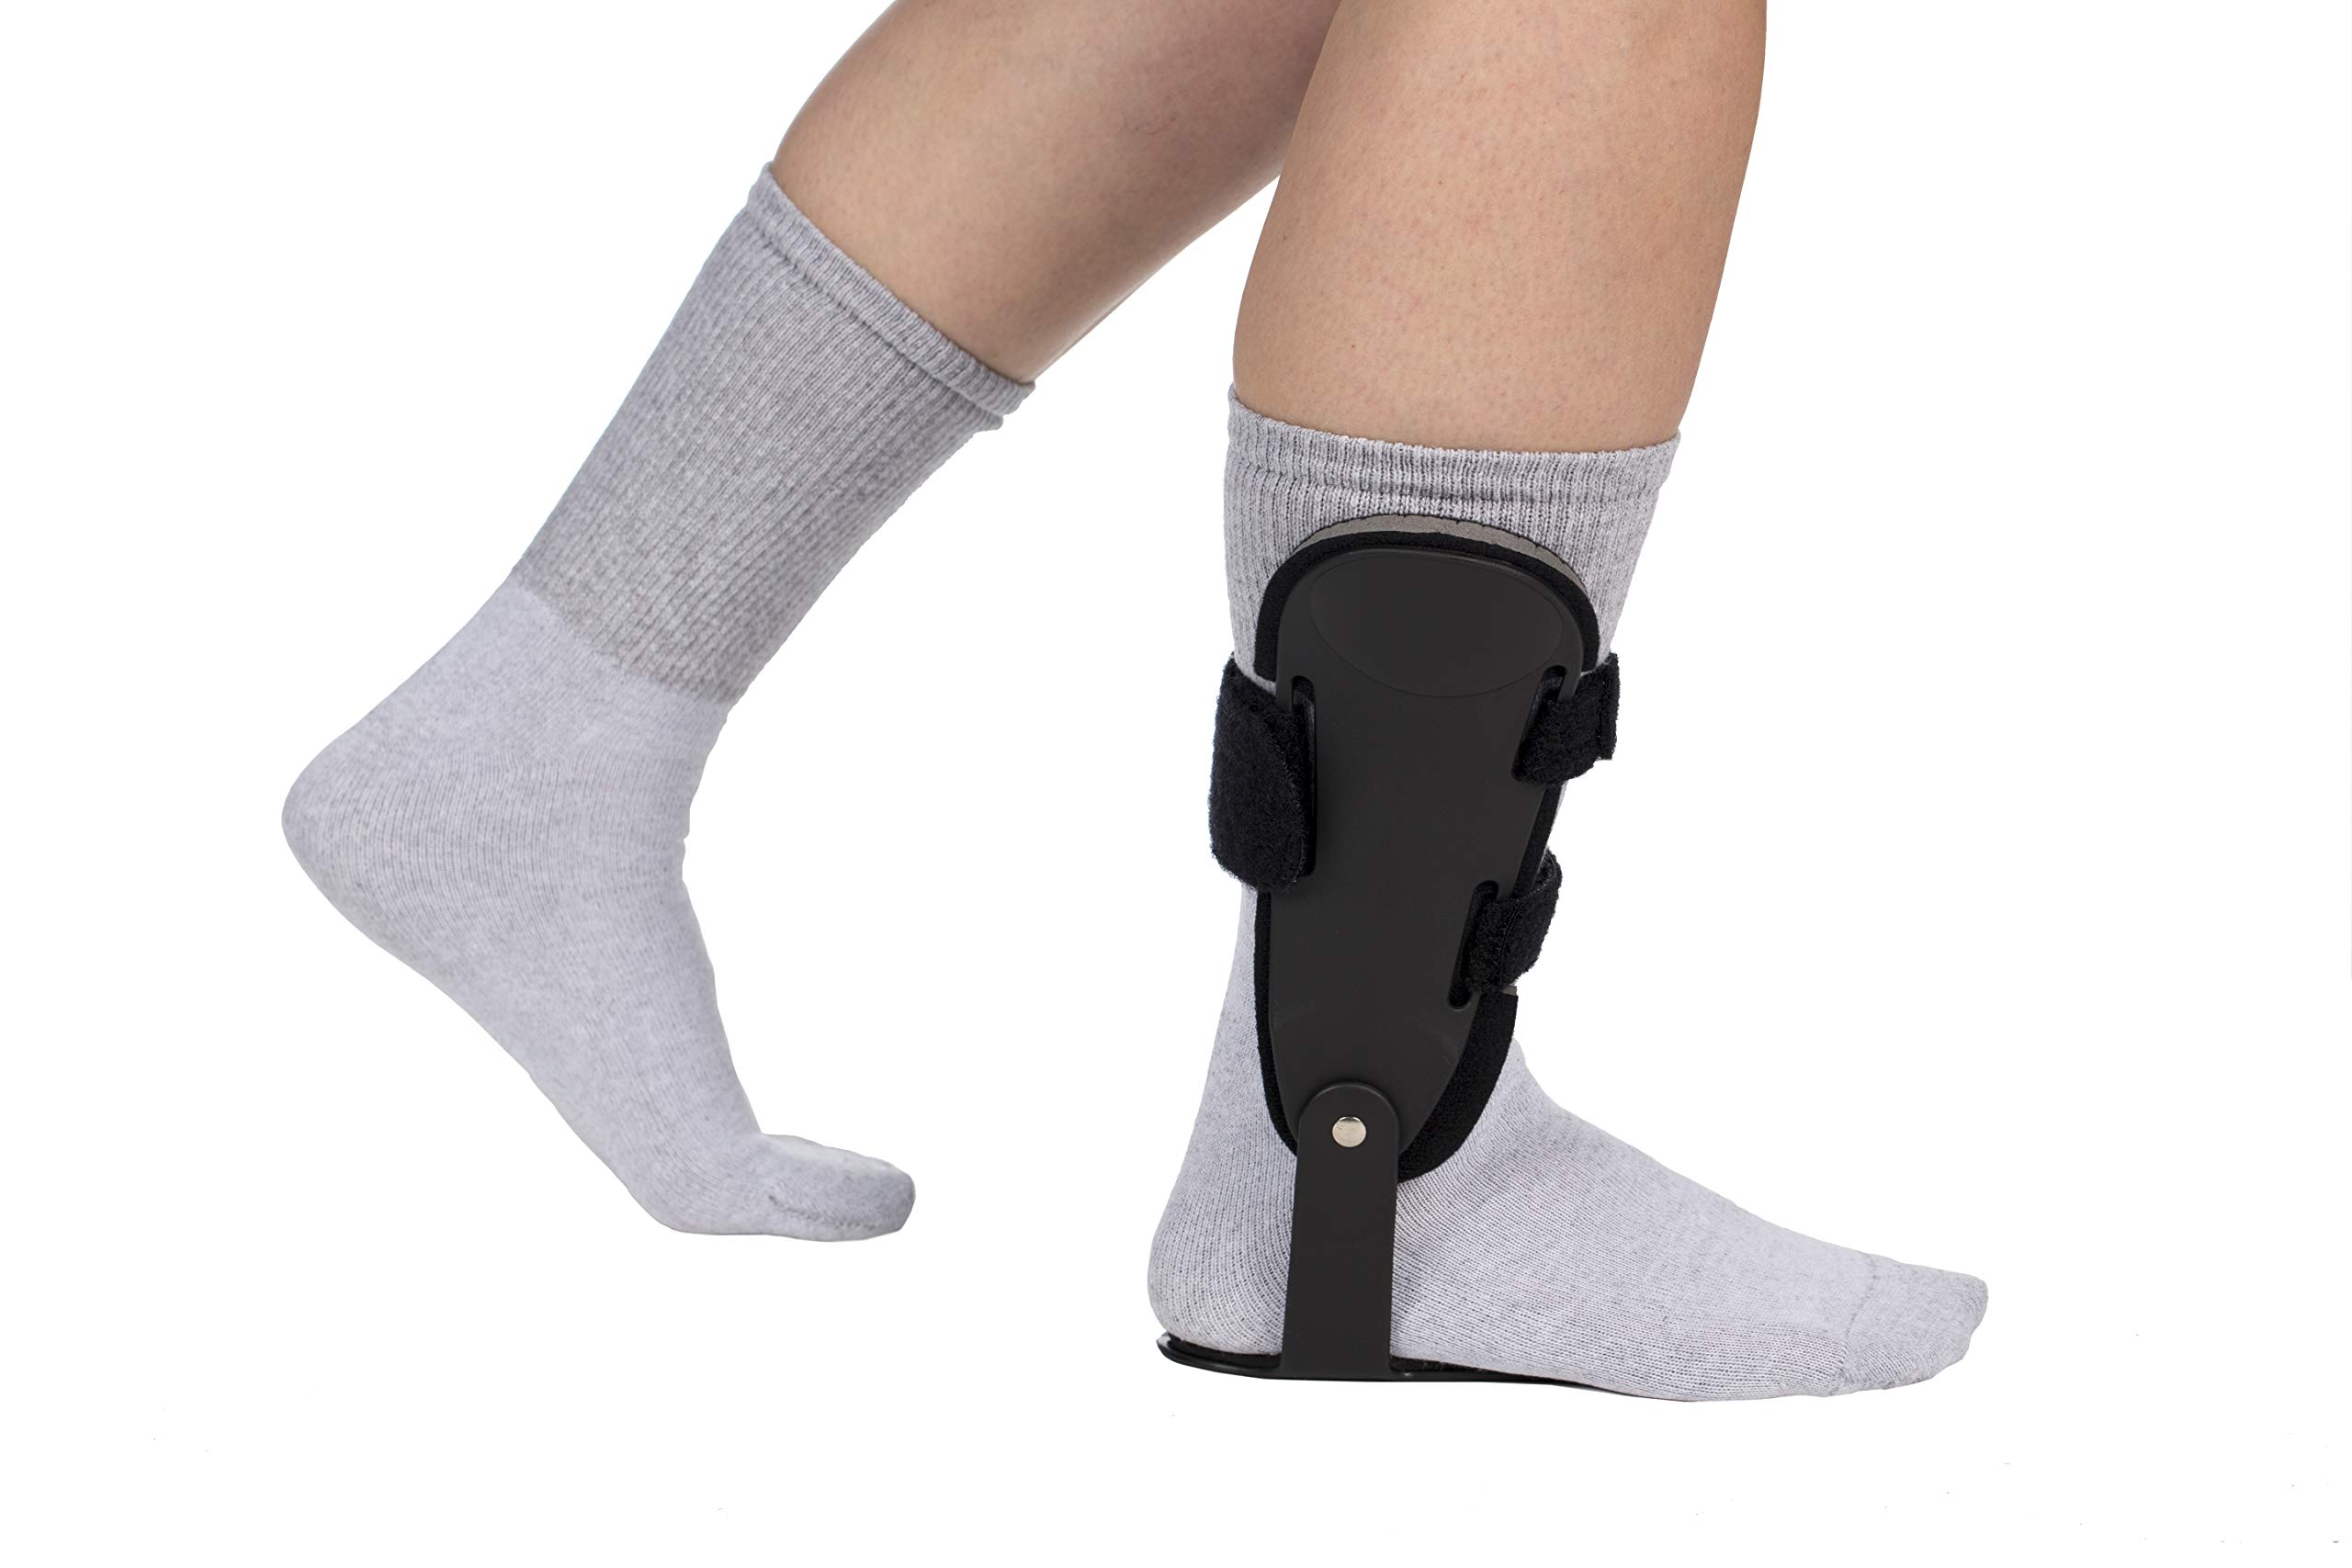 FitPro Adjustable Hinged Ankle Brace with Contoured Foot Plate- Left, X-Small, Amazon Exclusive Brand